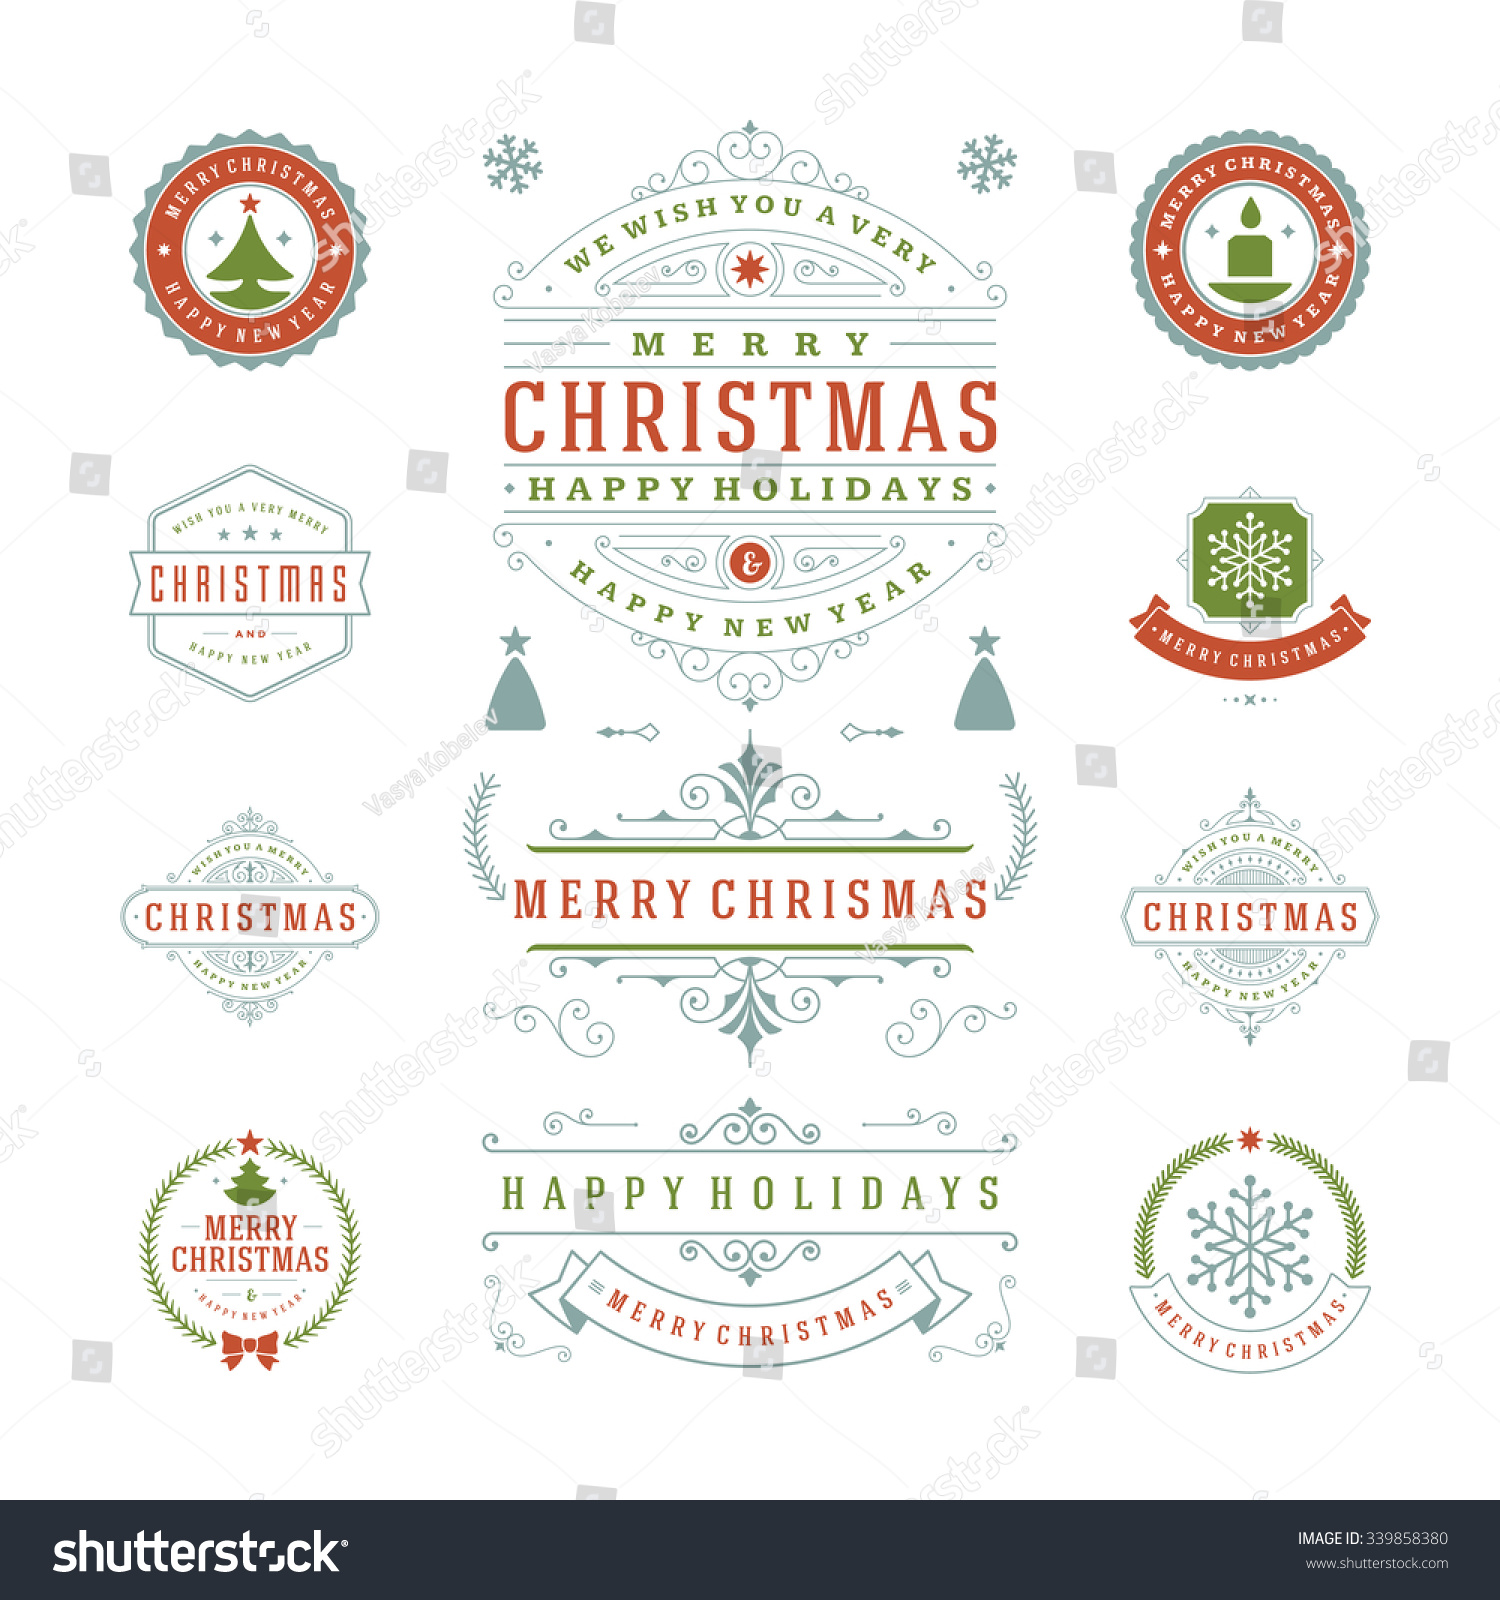 Christmas Labels Badges Vector Design Decorations Stock Vector ...